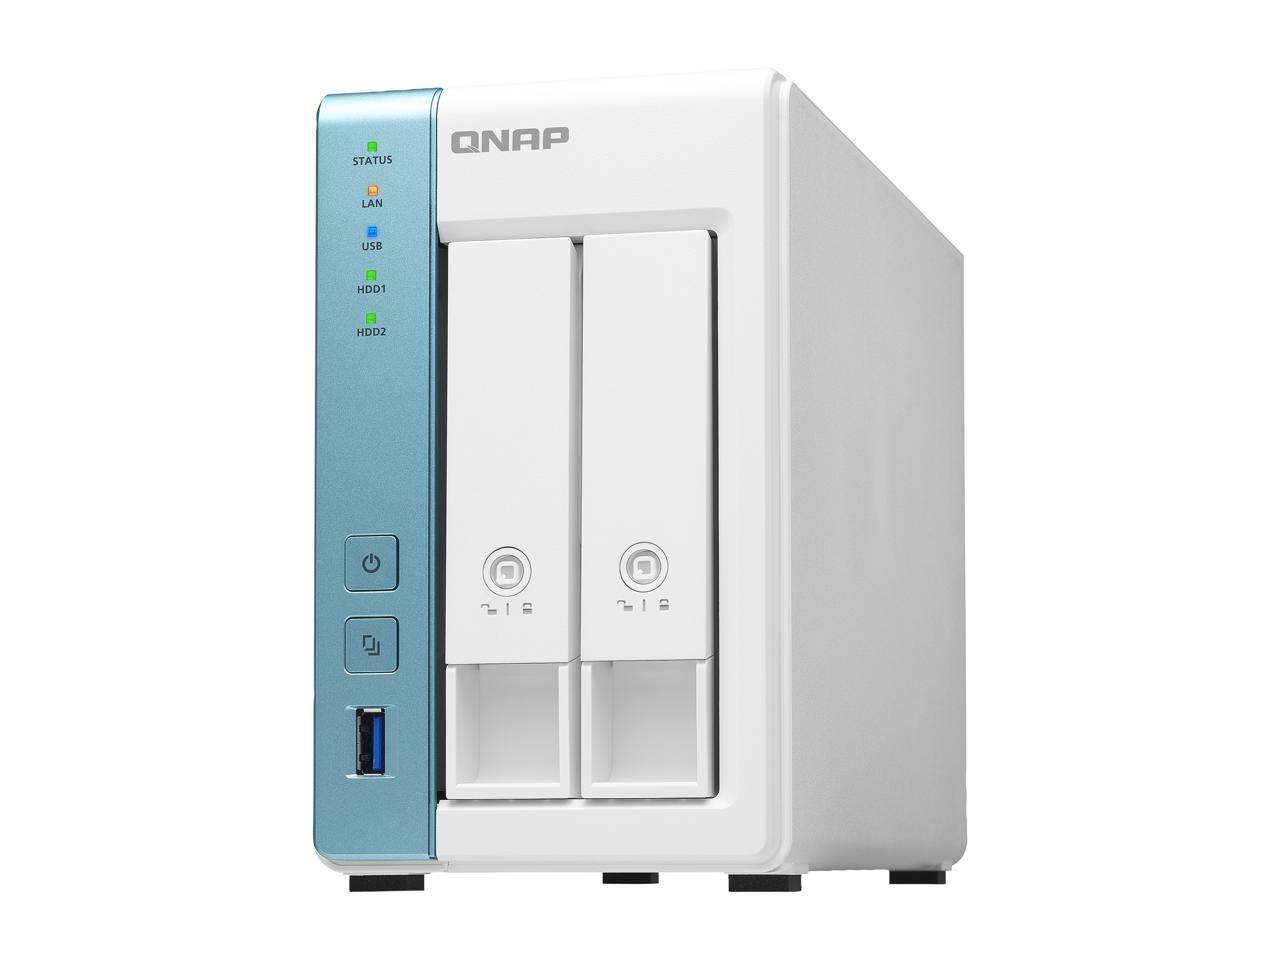 QNAP TS-231K-US 2-Bay Personal Cloud NAS 4-core 1.7Ghz 1GB RAM with Lockable Drive Tray (Diskless)